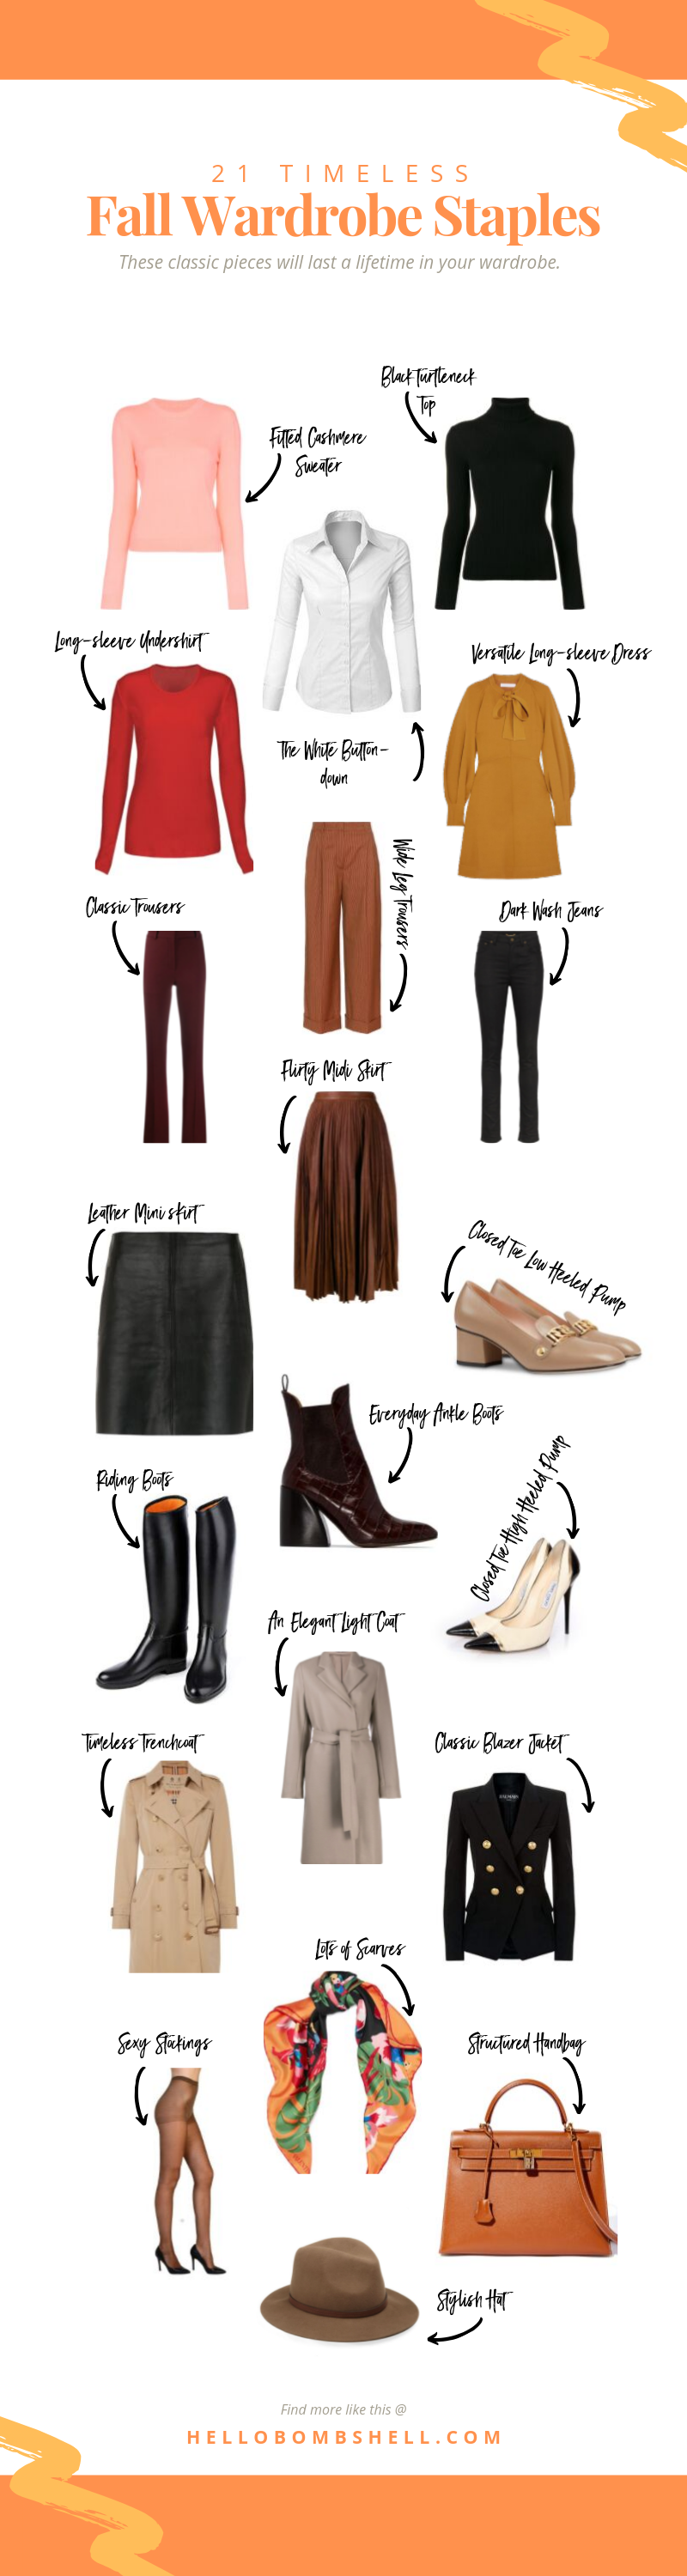 20 Timeless Classic Style Fall Wardrobe Staples for Women That'll ...